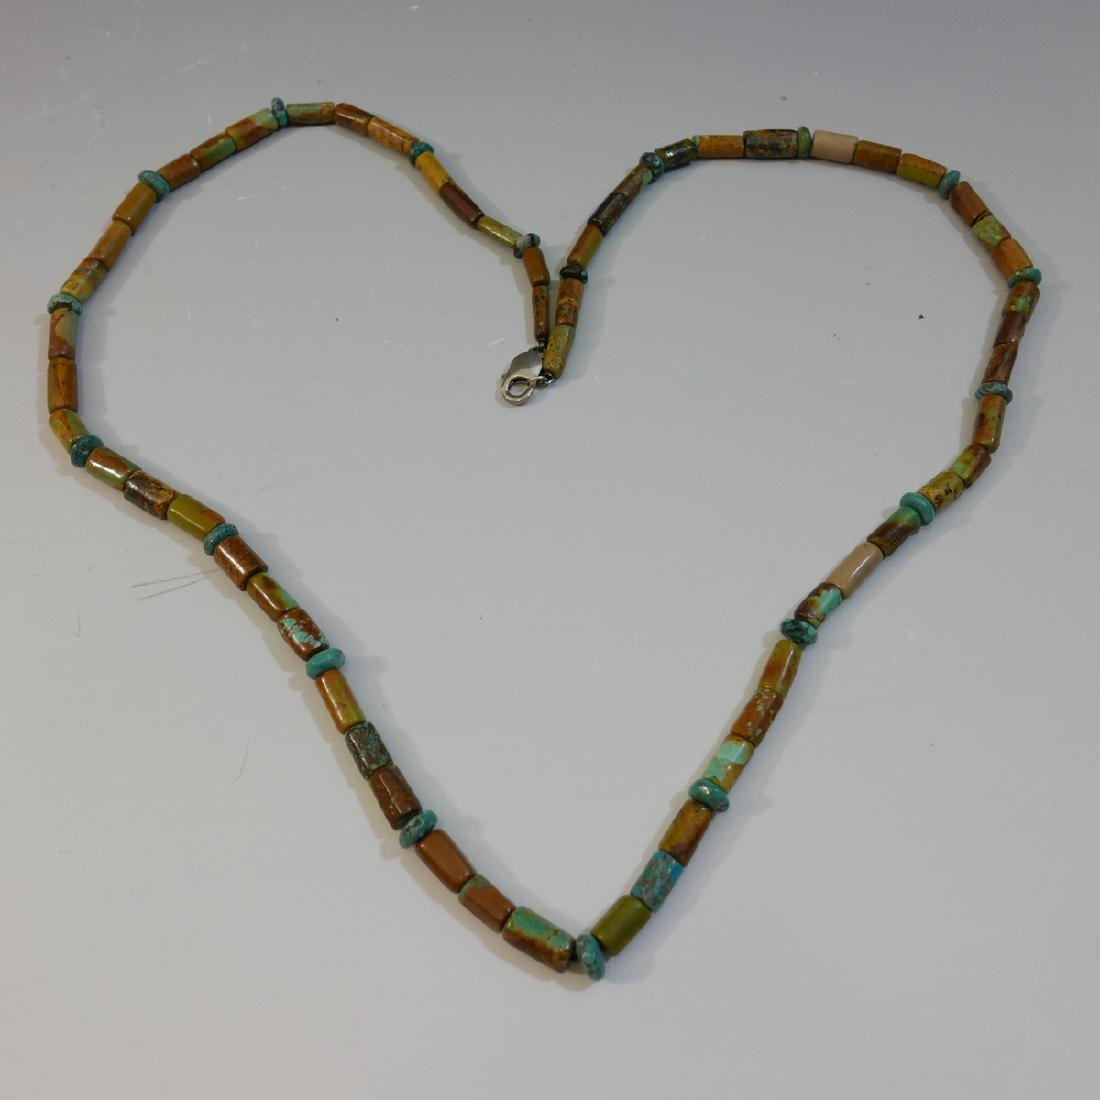 ANTIQUE NATURAL TURQUOISE BARREL BEADS NECKLACE